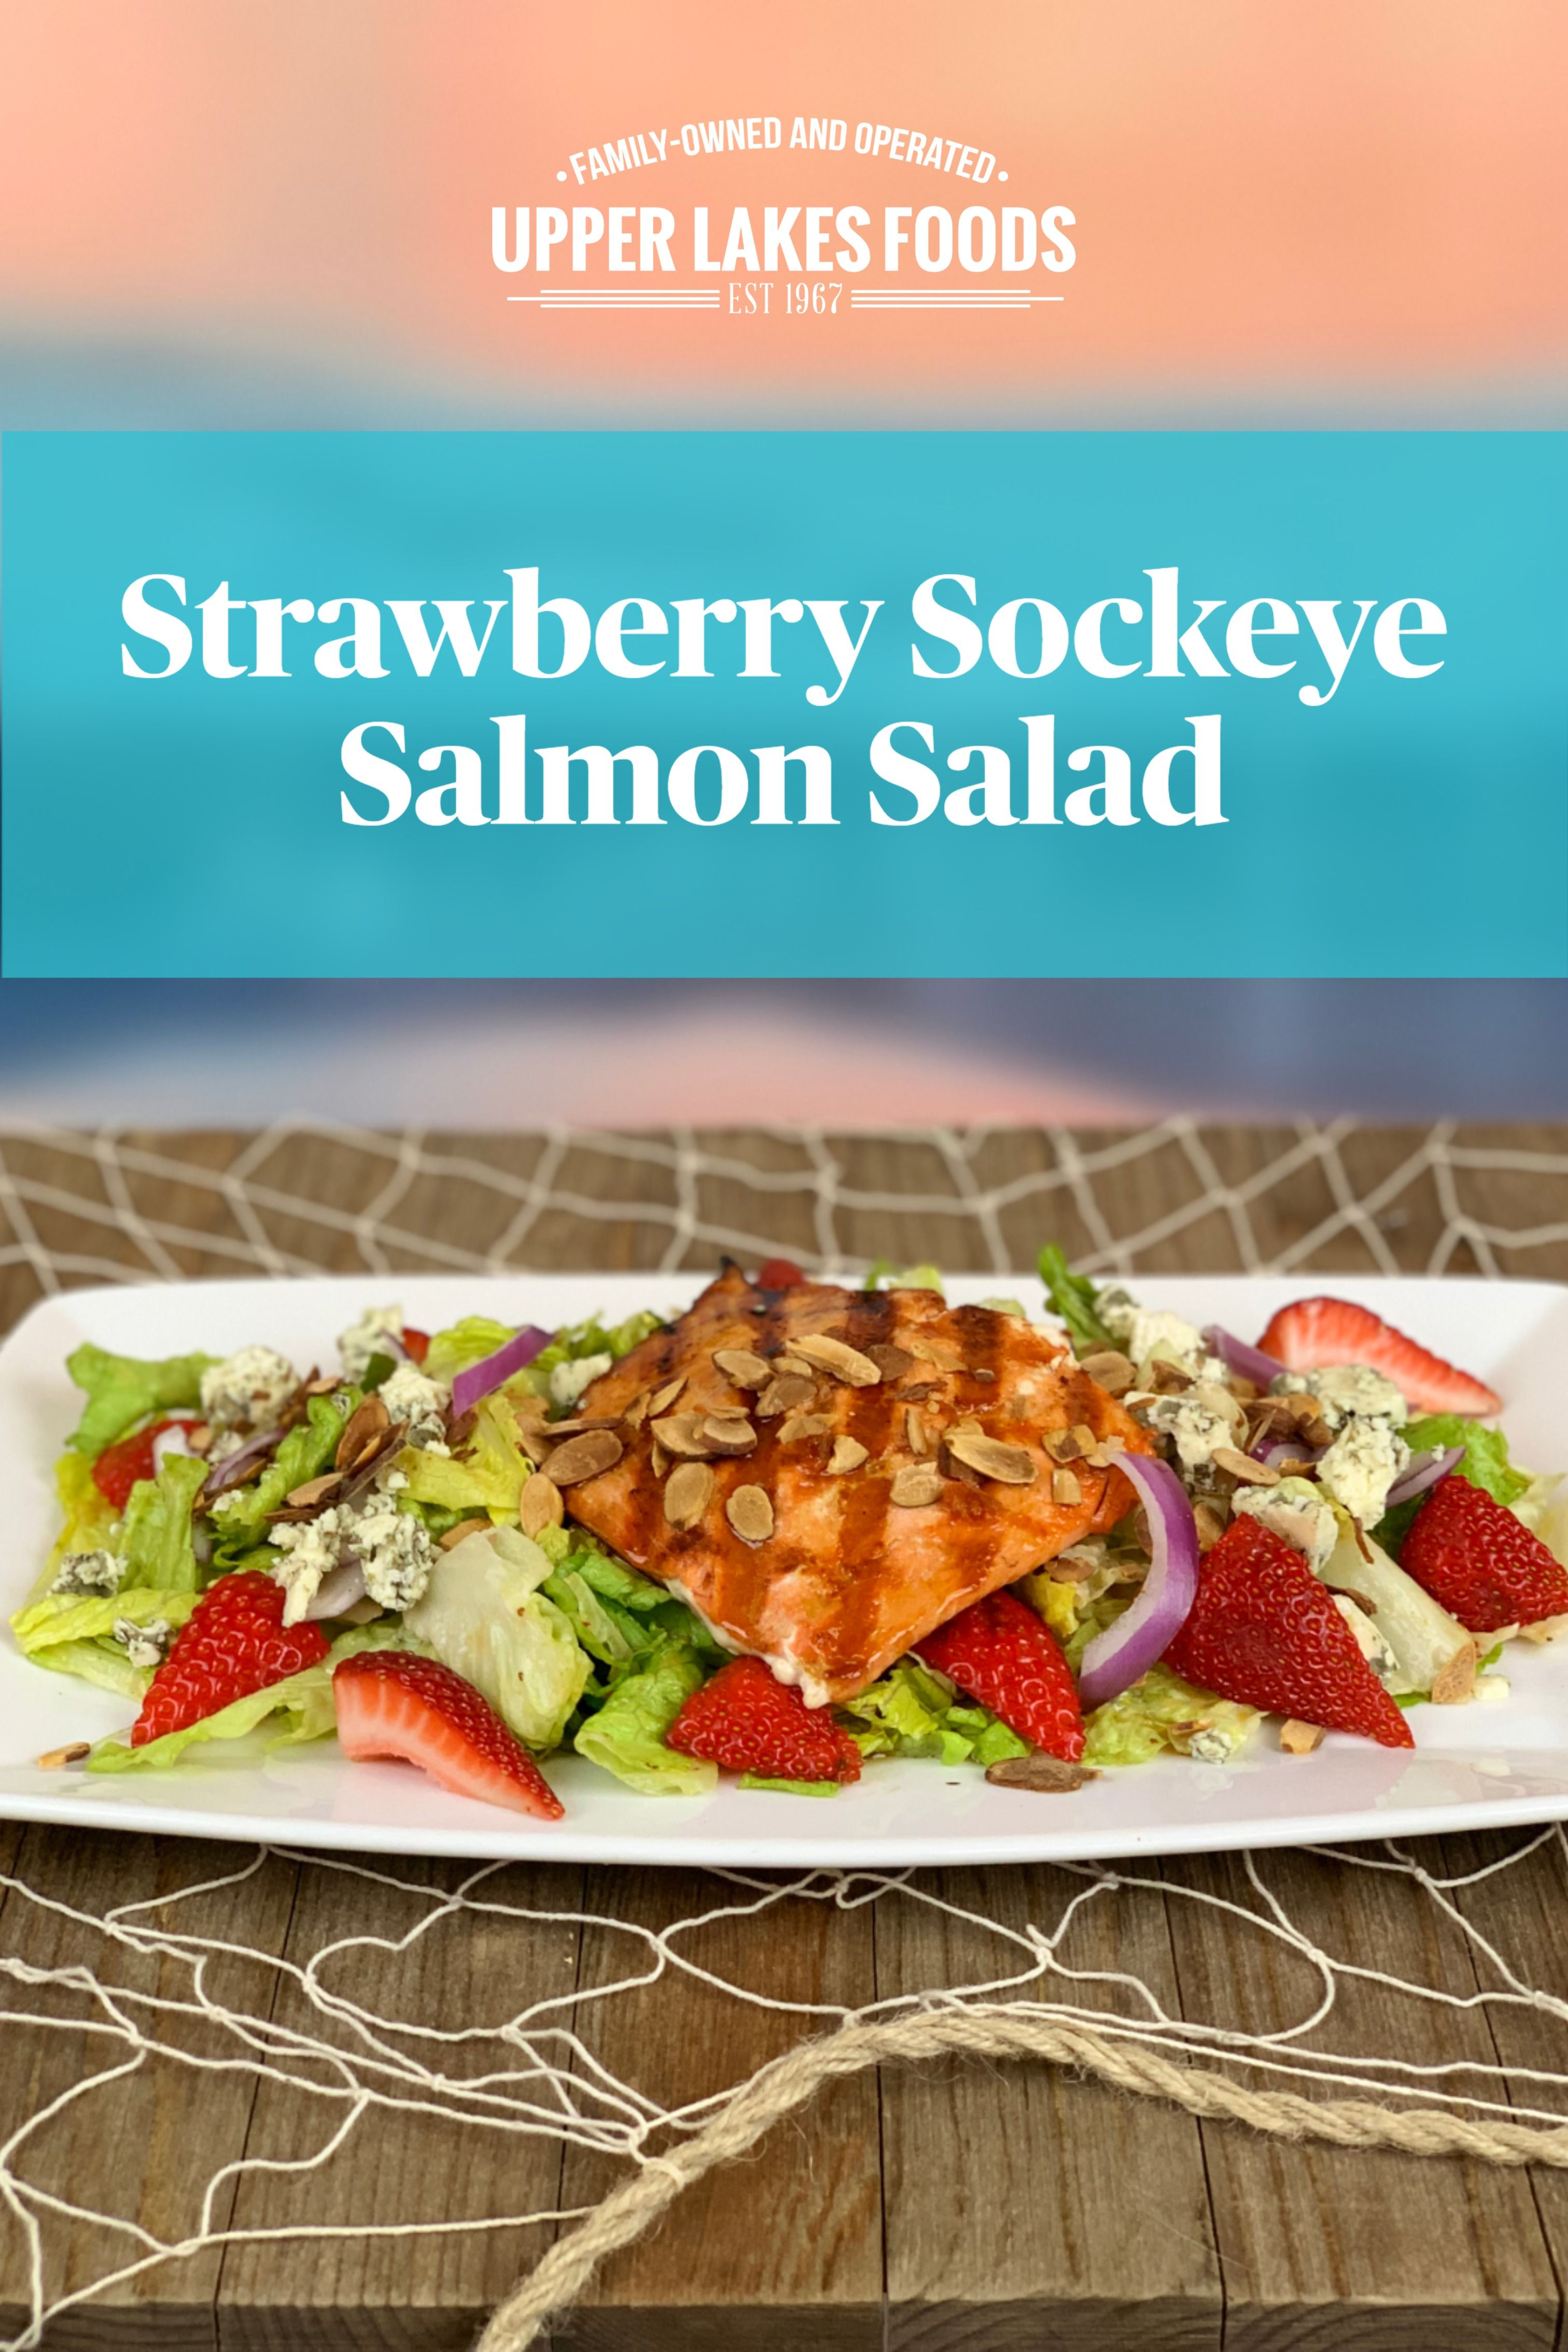 Strawberry Sockeye Salmon Salad